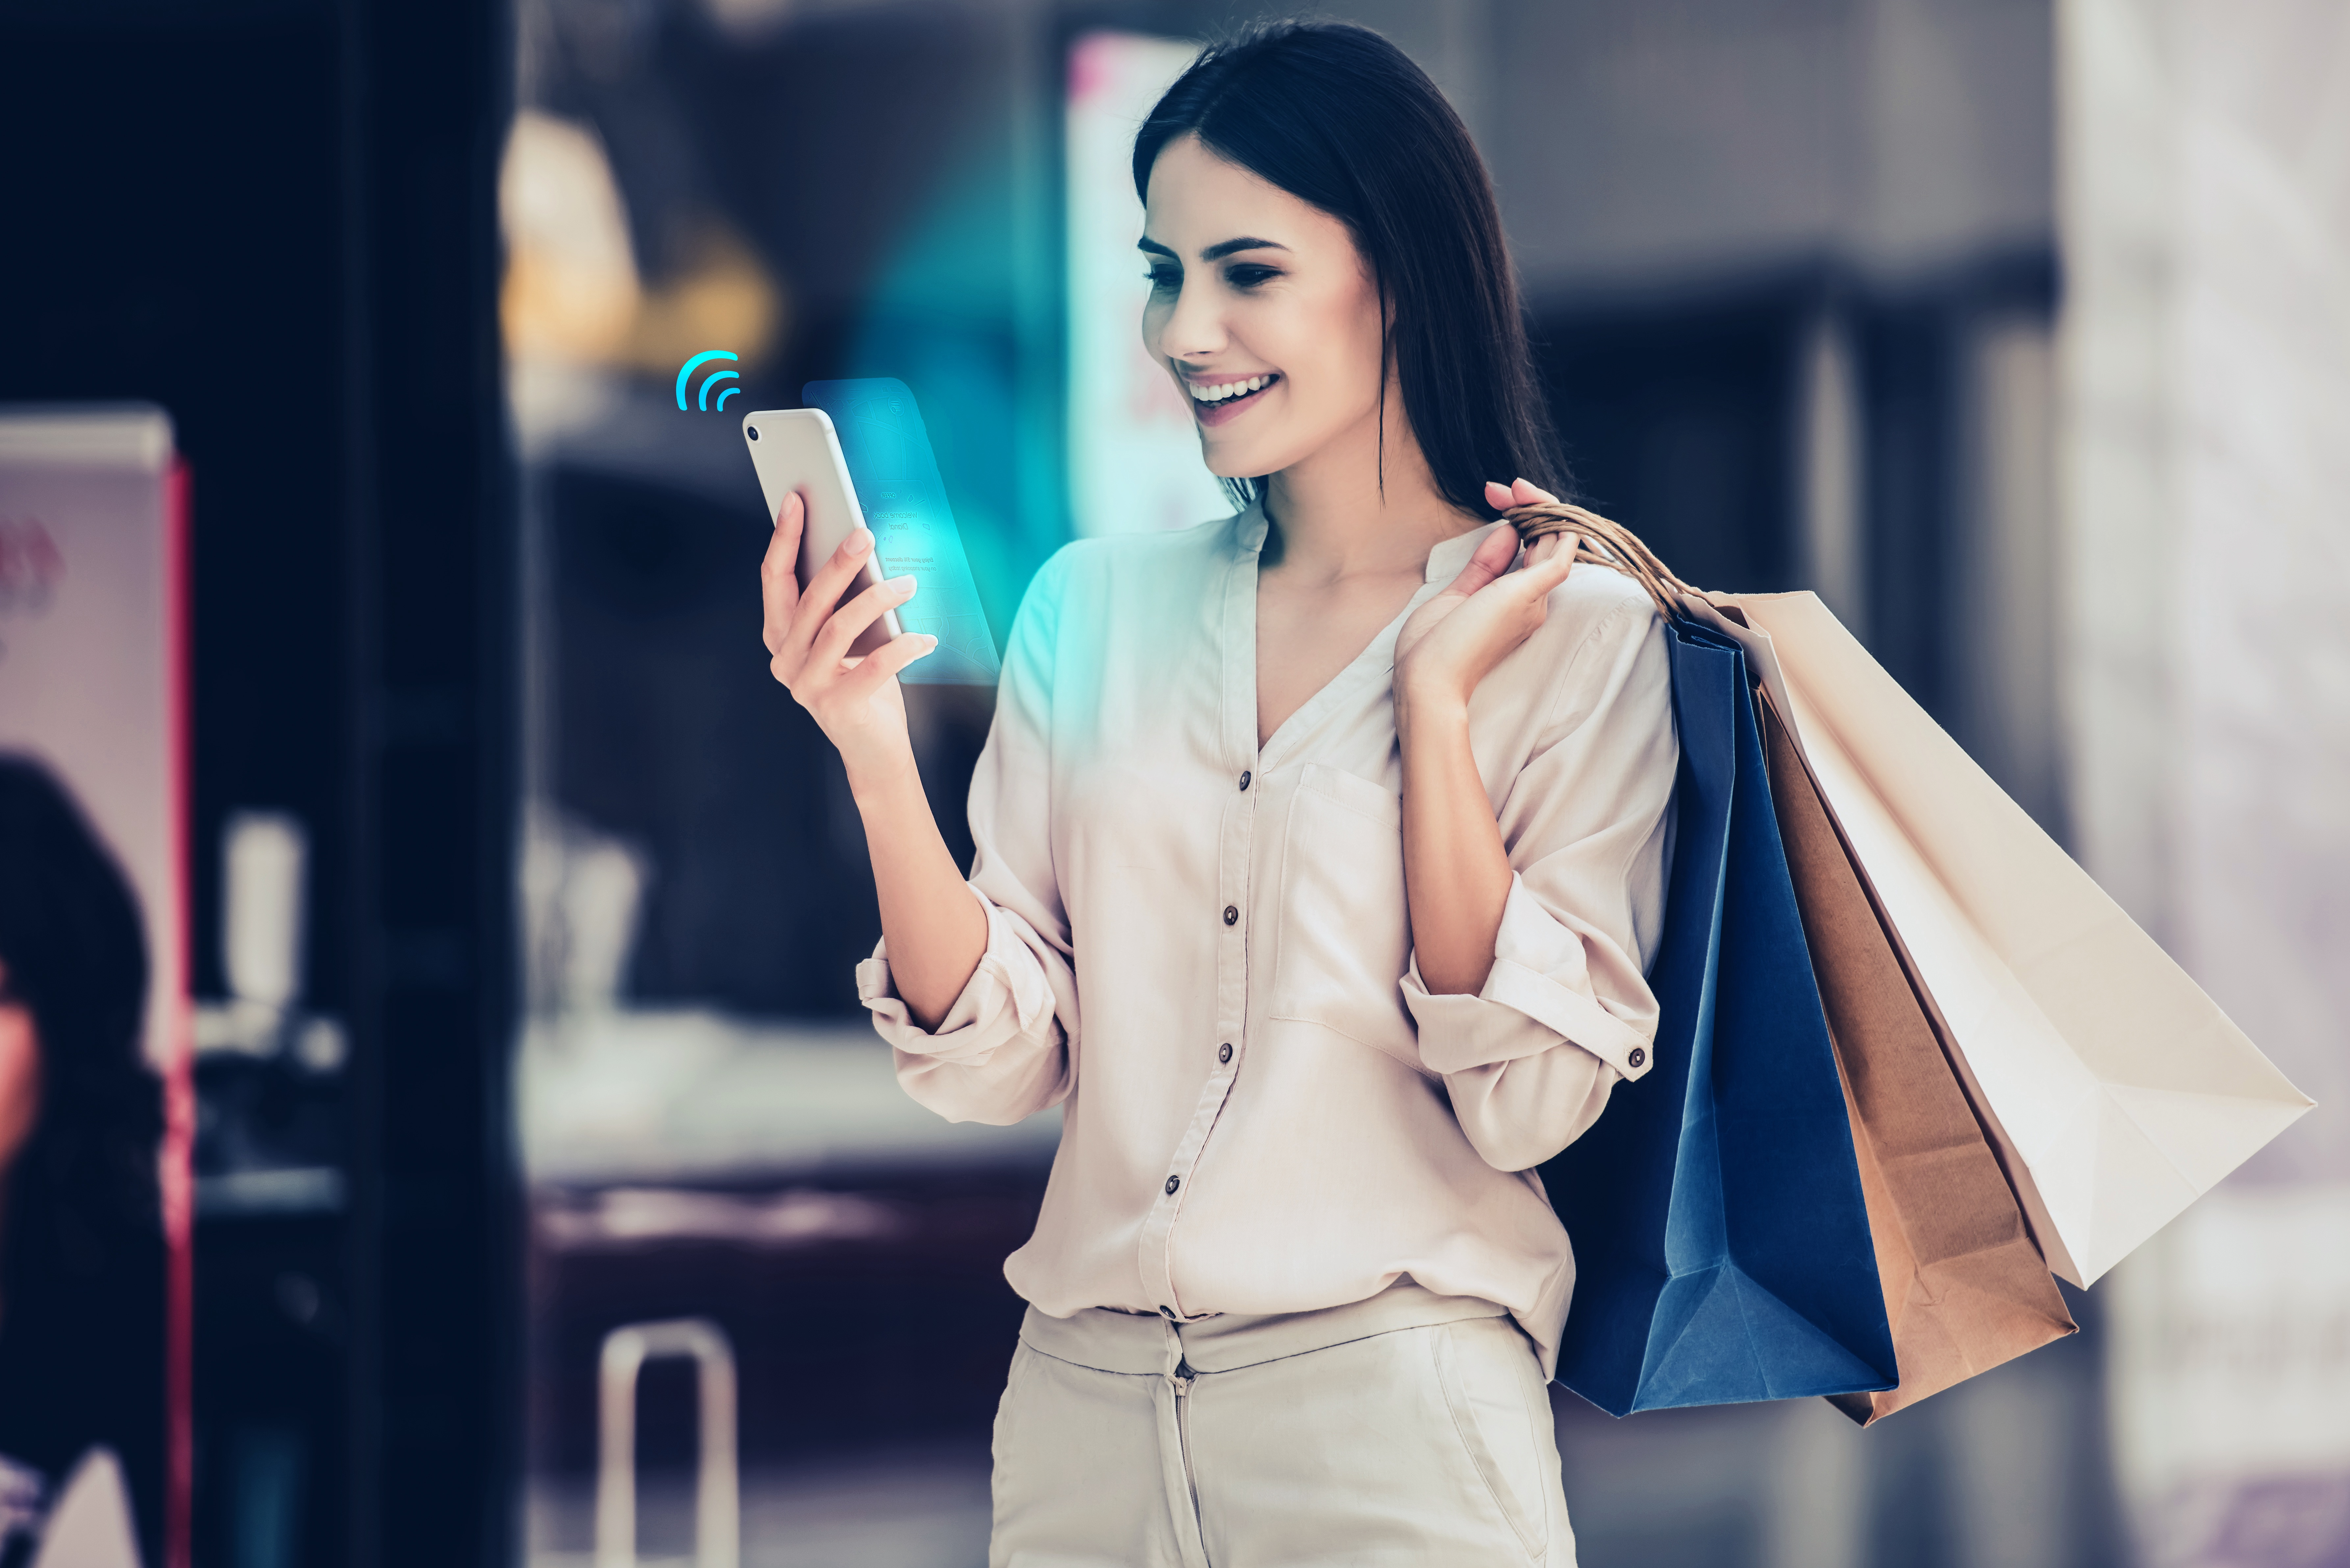 nrf-woman-shopping-phone